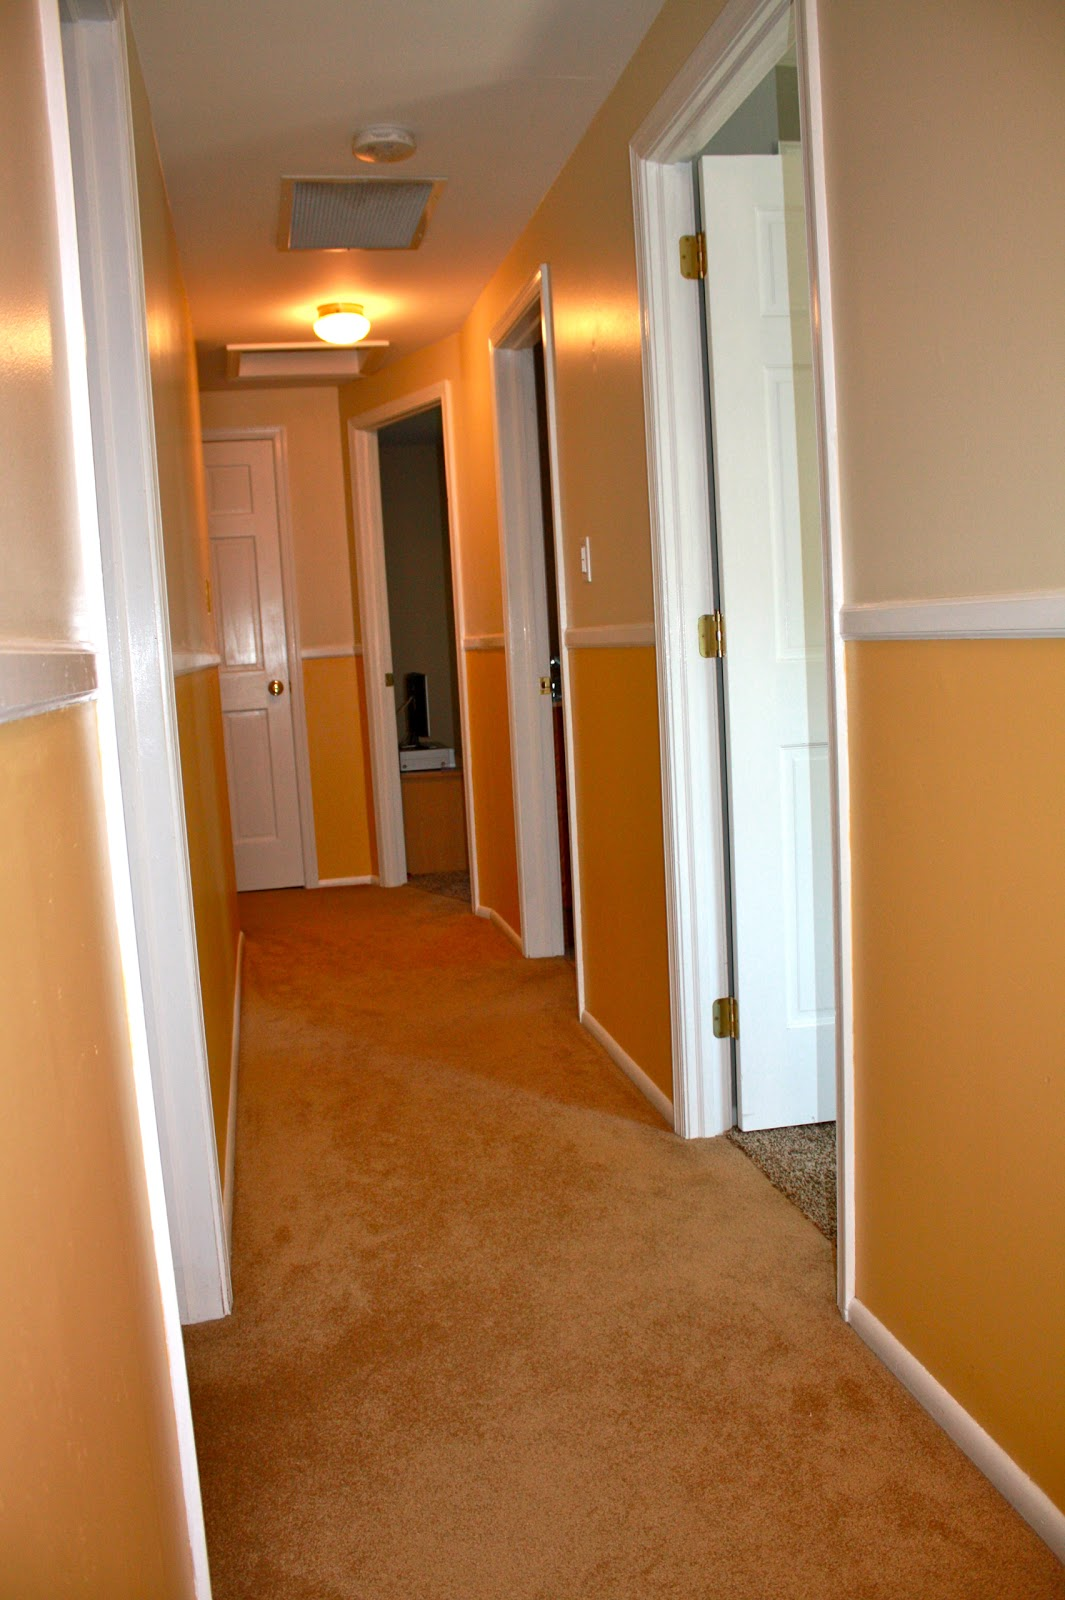 Painting Hallways New Of Put a little: Hallway Part 1 Tips for Painting Stripes Image